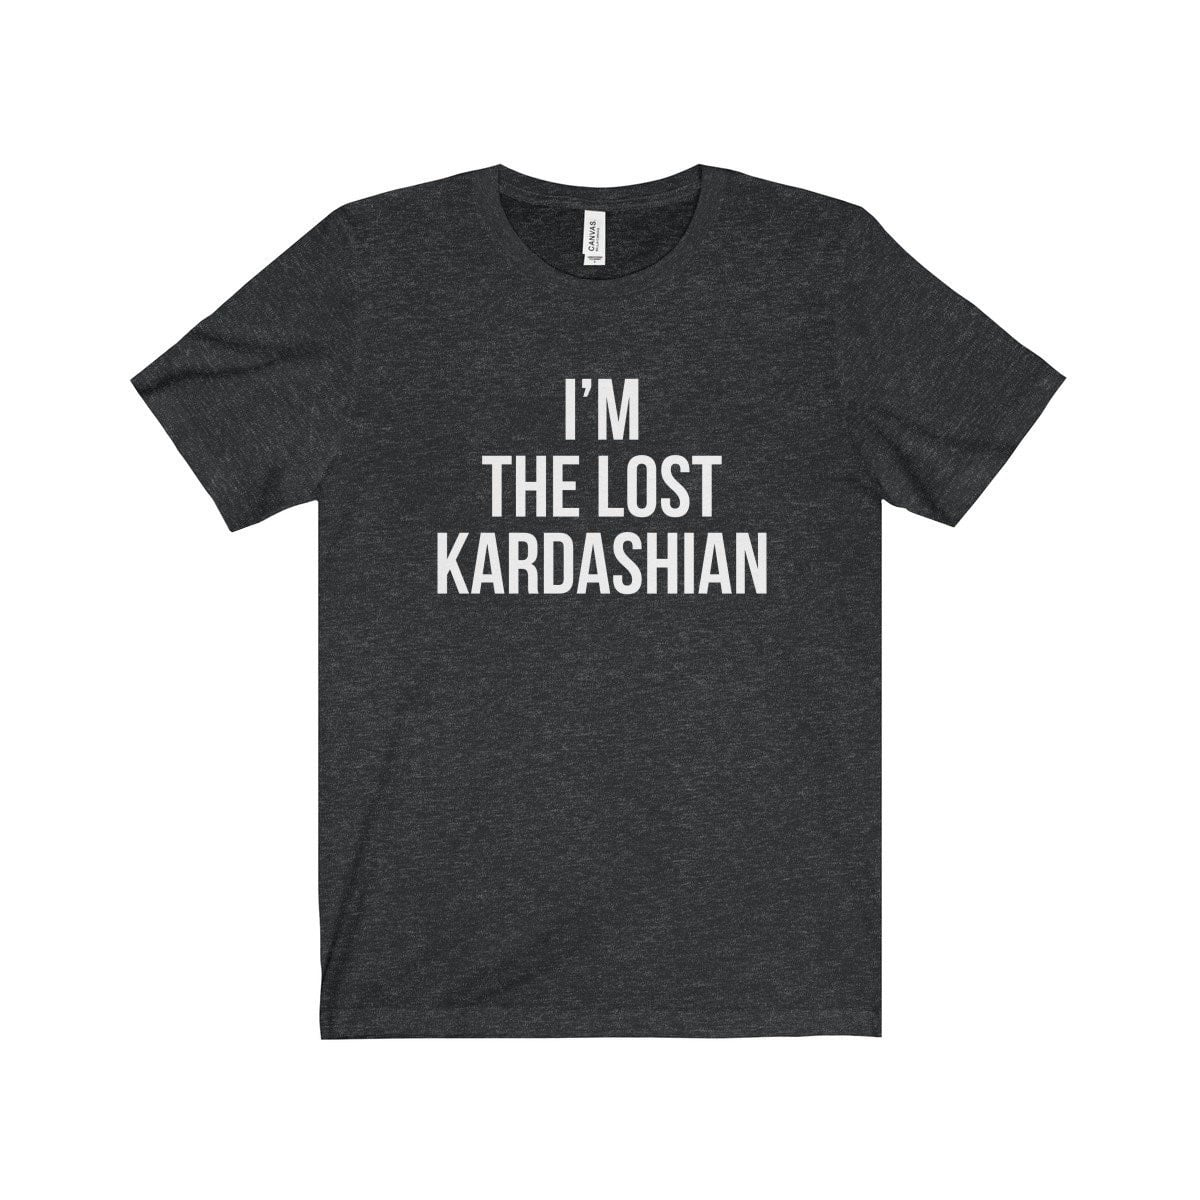 92e1fdacf Best Gift Ideas For Kardashian Fans